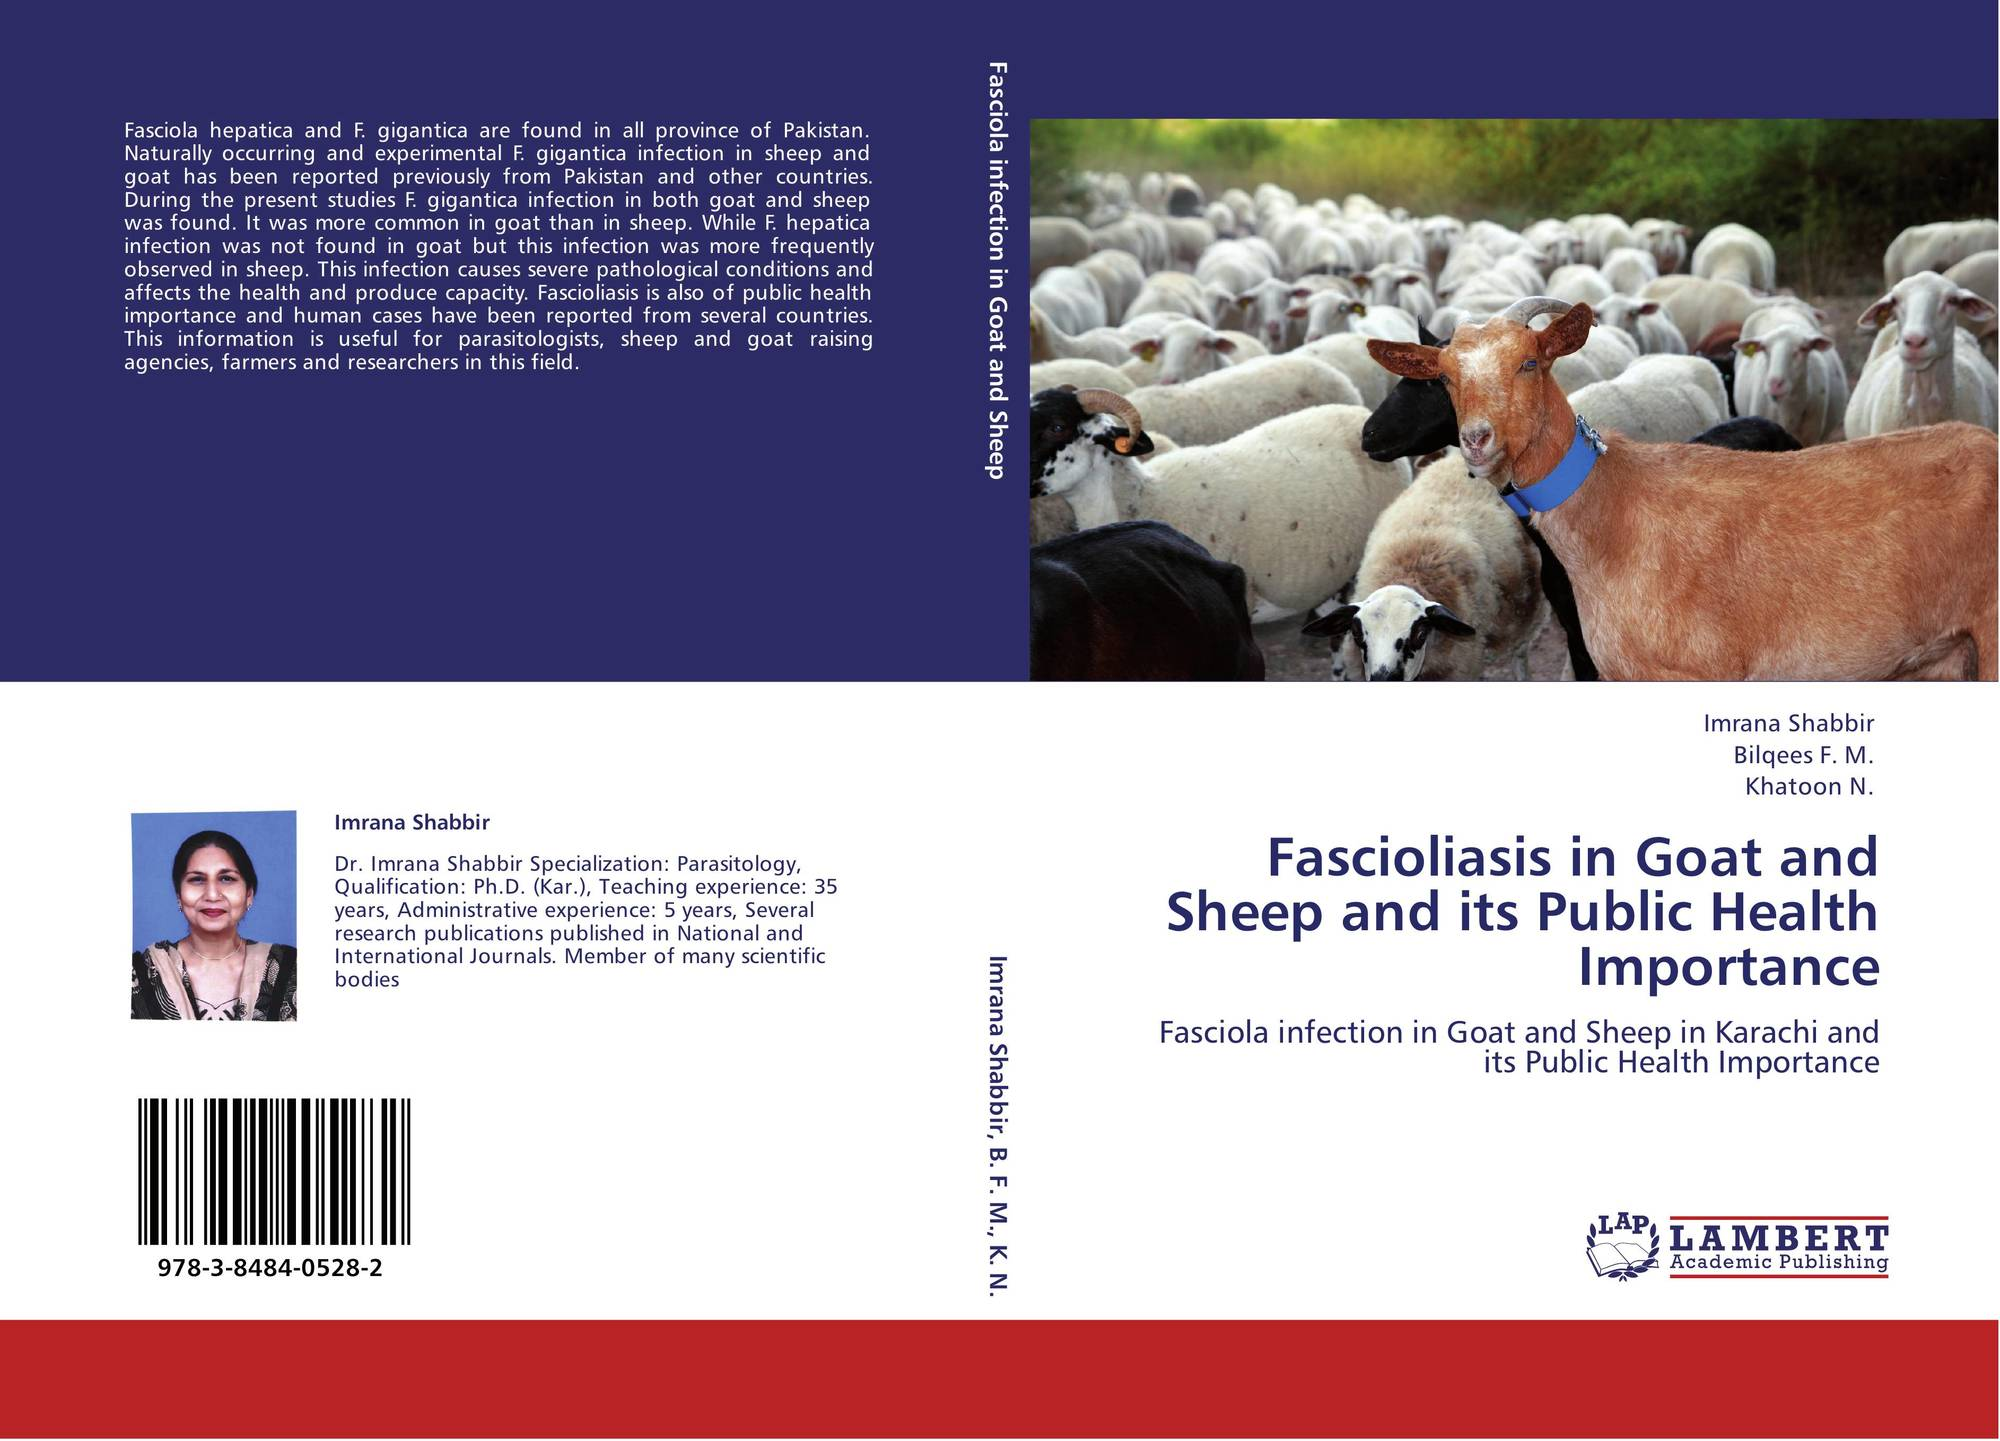 Fascioliasis in Goat and Sheep and its Public Health